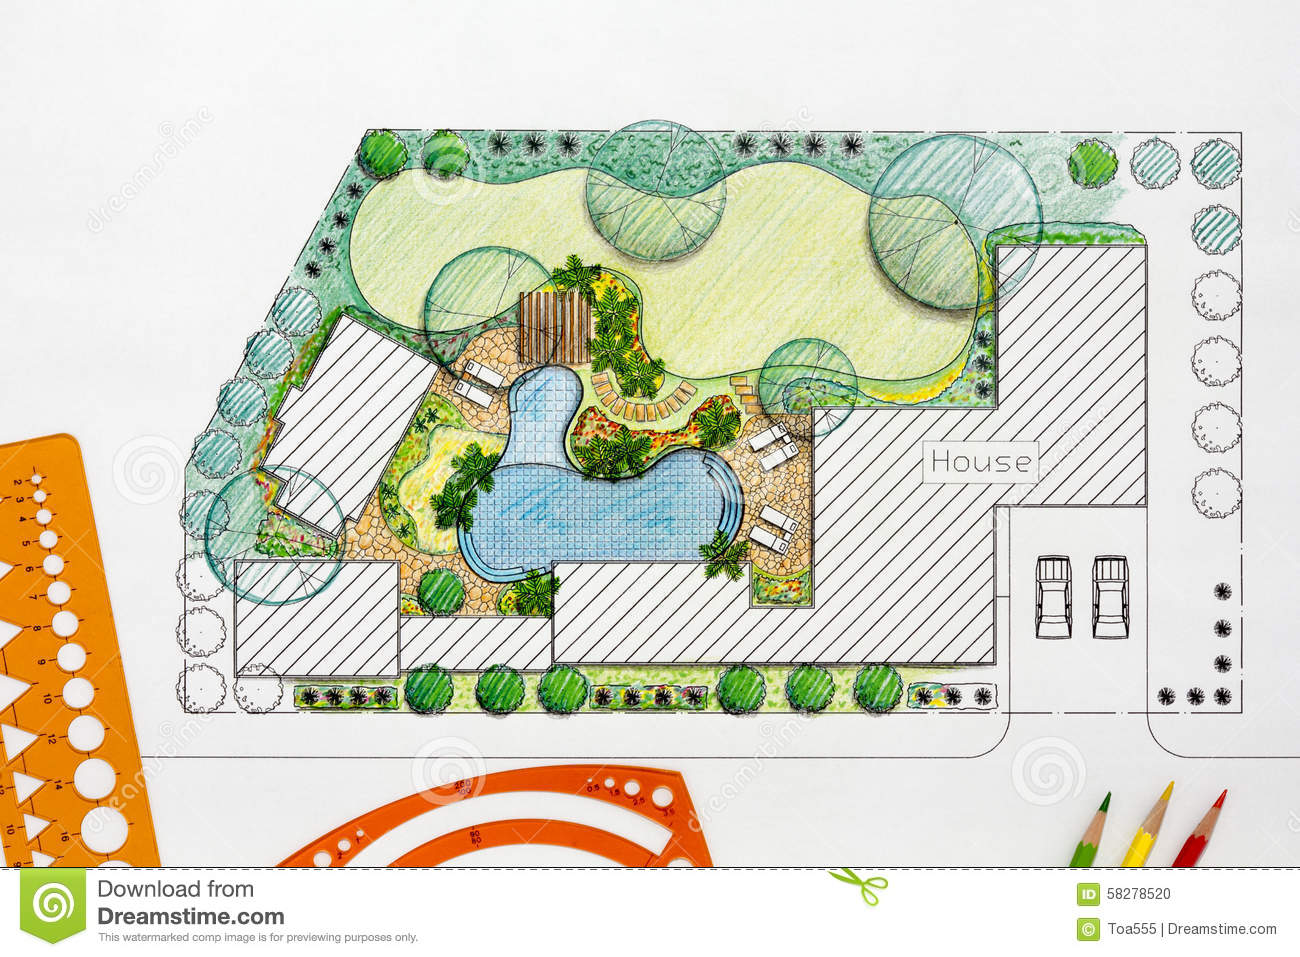 Landscape Architect Design Backyard Plan For Villa Stock